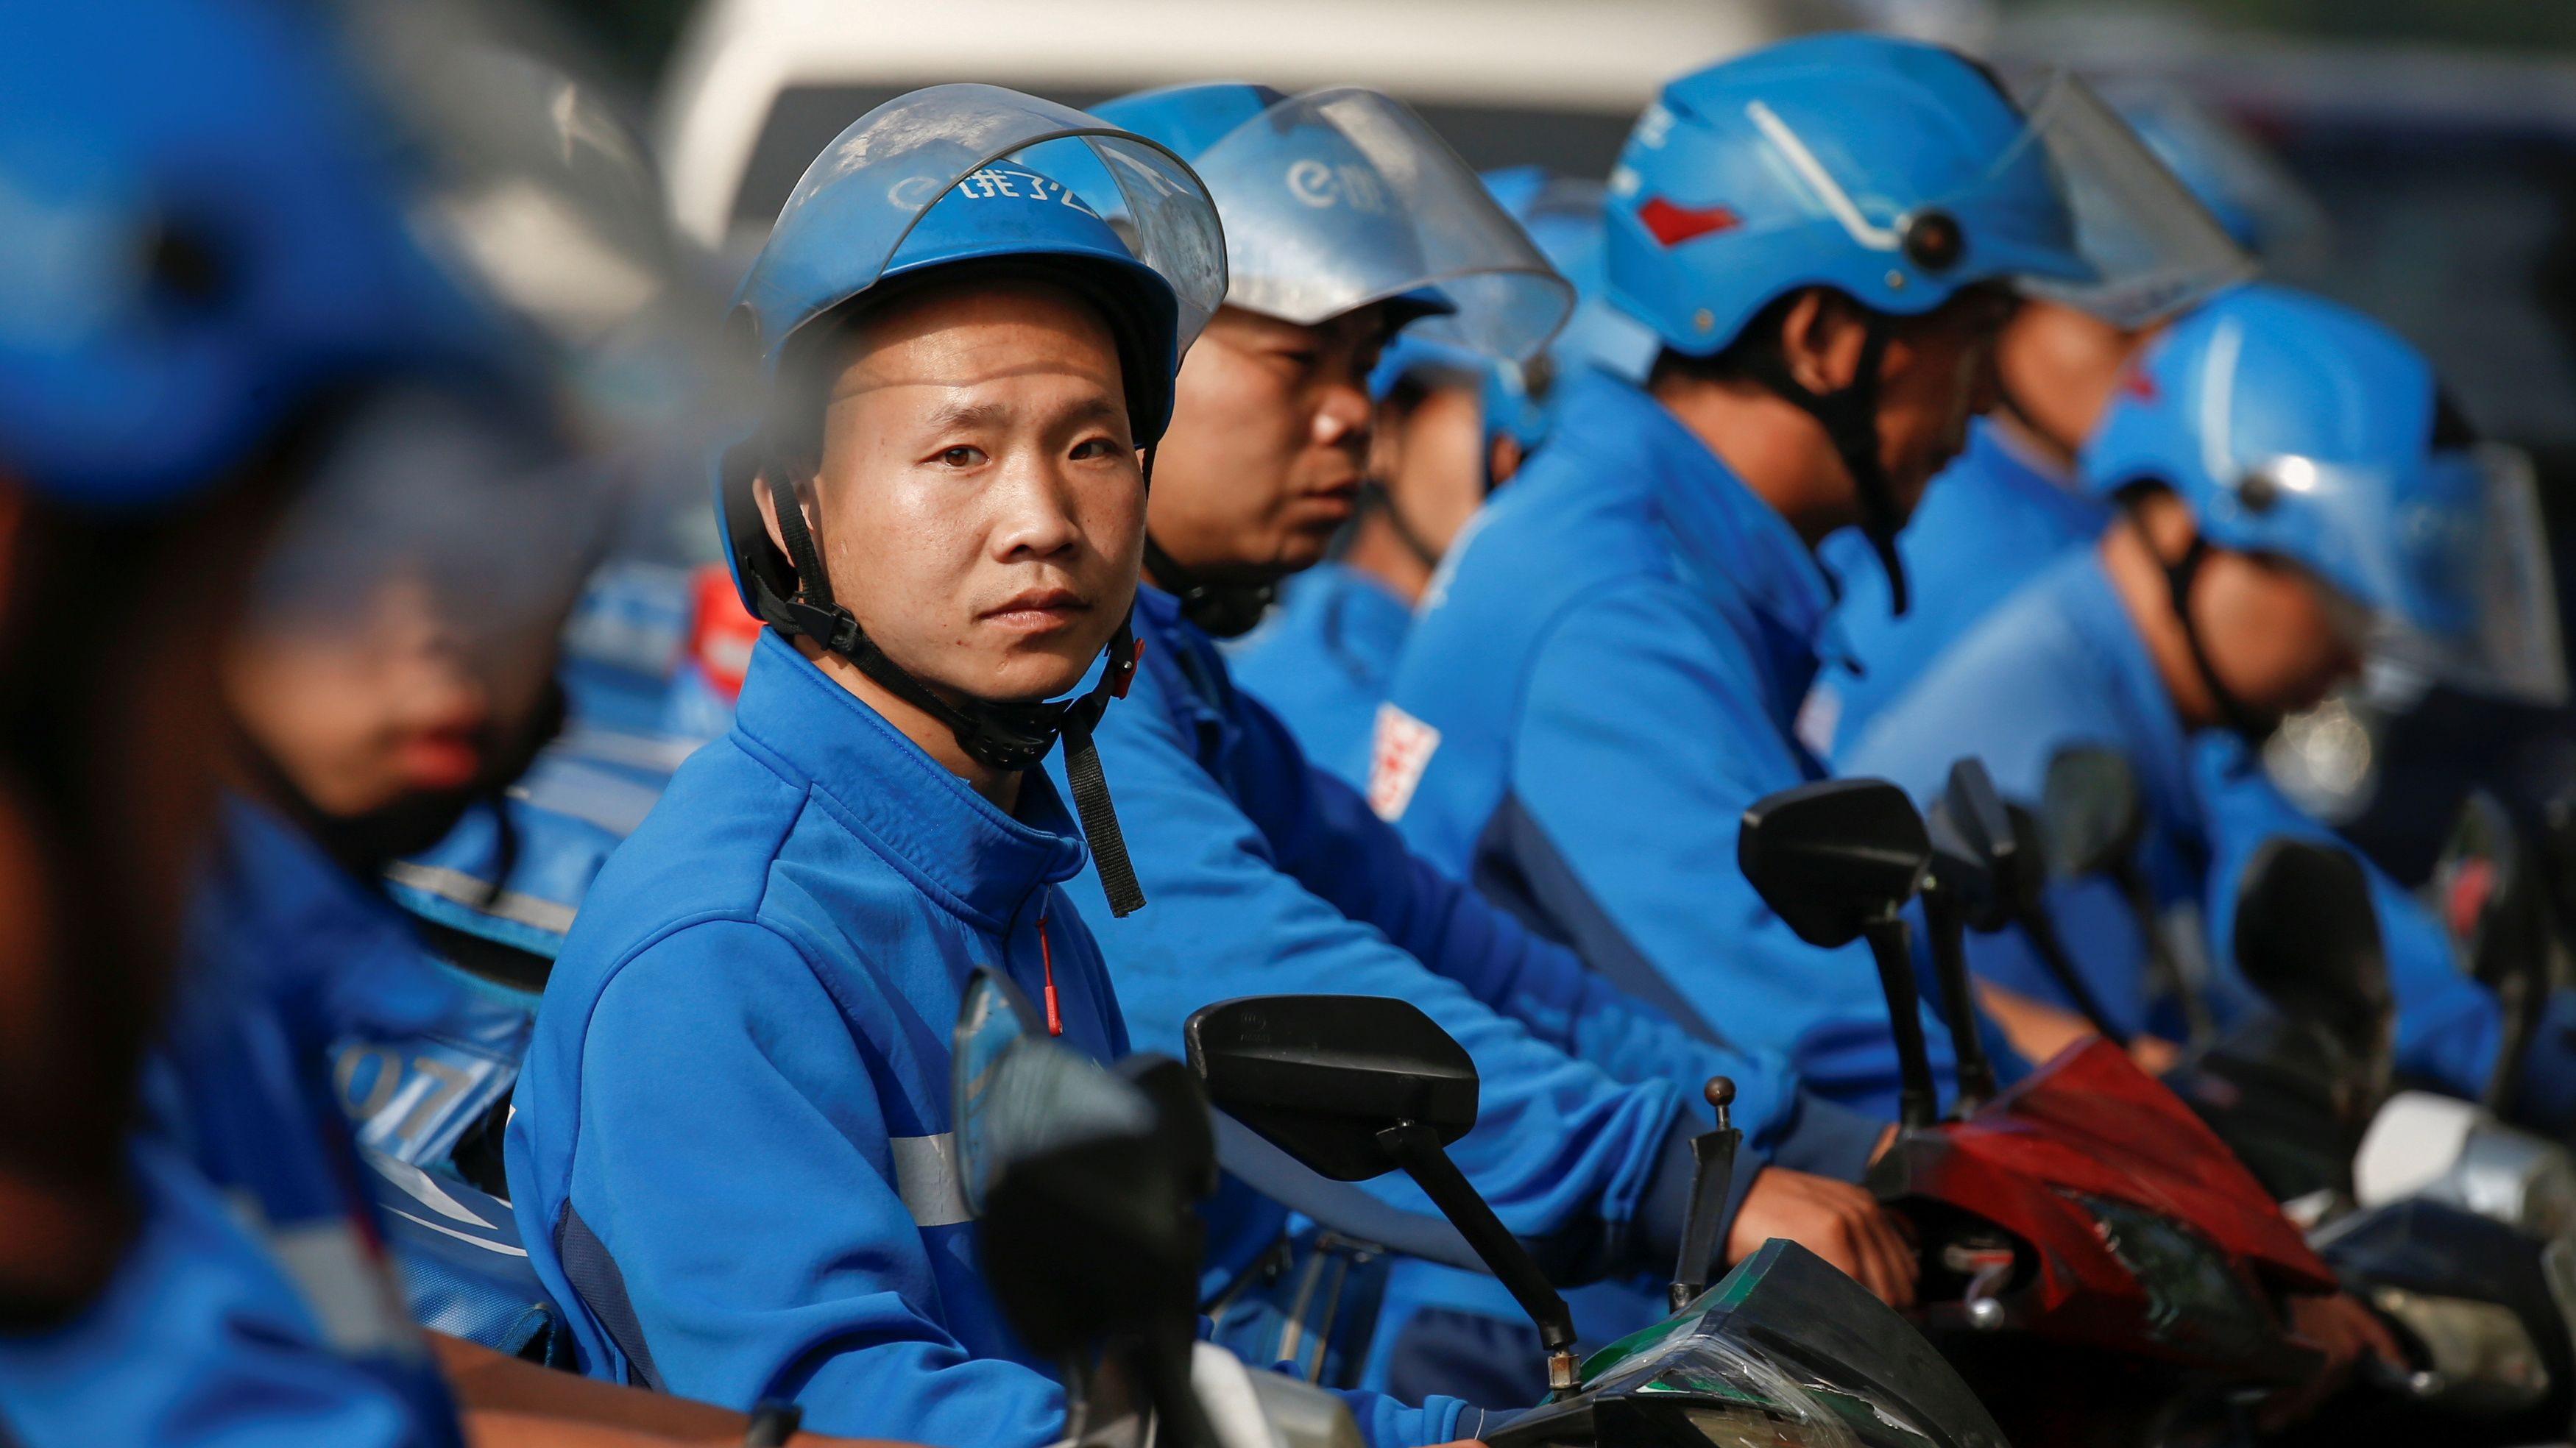 Drivers of the food delivery service Ele.me prepare to start their morning shift after an internal security check in Beijing, China, September 21, 2017. Picture taken September 21, 2017.